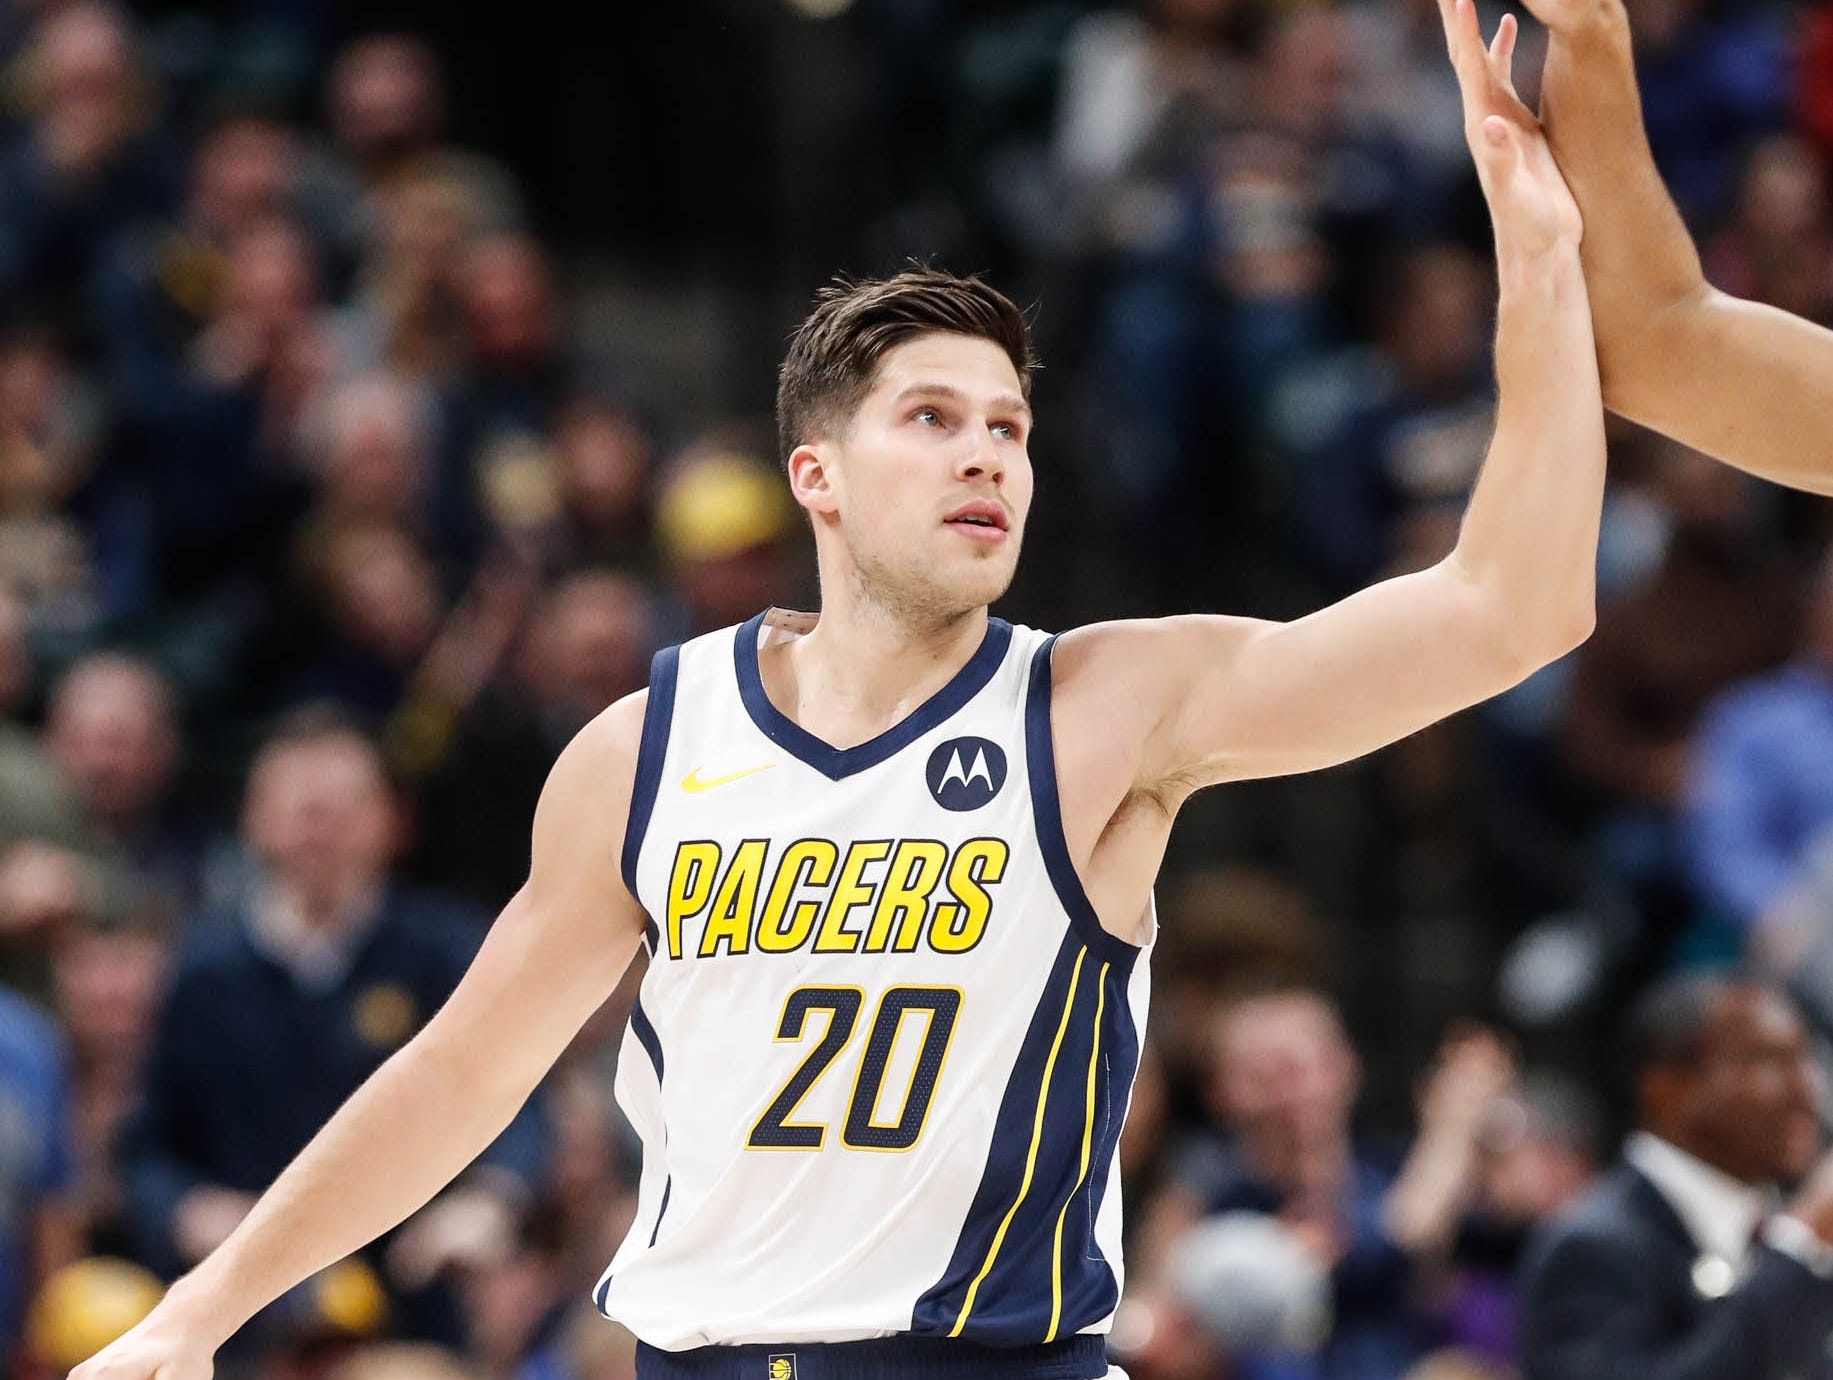 Indiana Pacer's forward Doug McDermott (20) is high five'd by a team mate after his dunk during a game between the Indiana Pacers and the Detroit Pistons at at Bankers Life Fieldhouse in Indianapolis on Friday, Dec. 28, 2018.